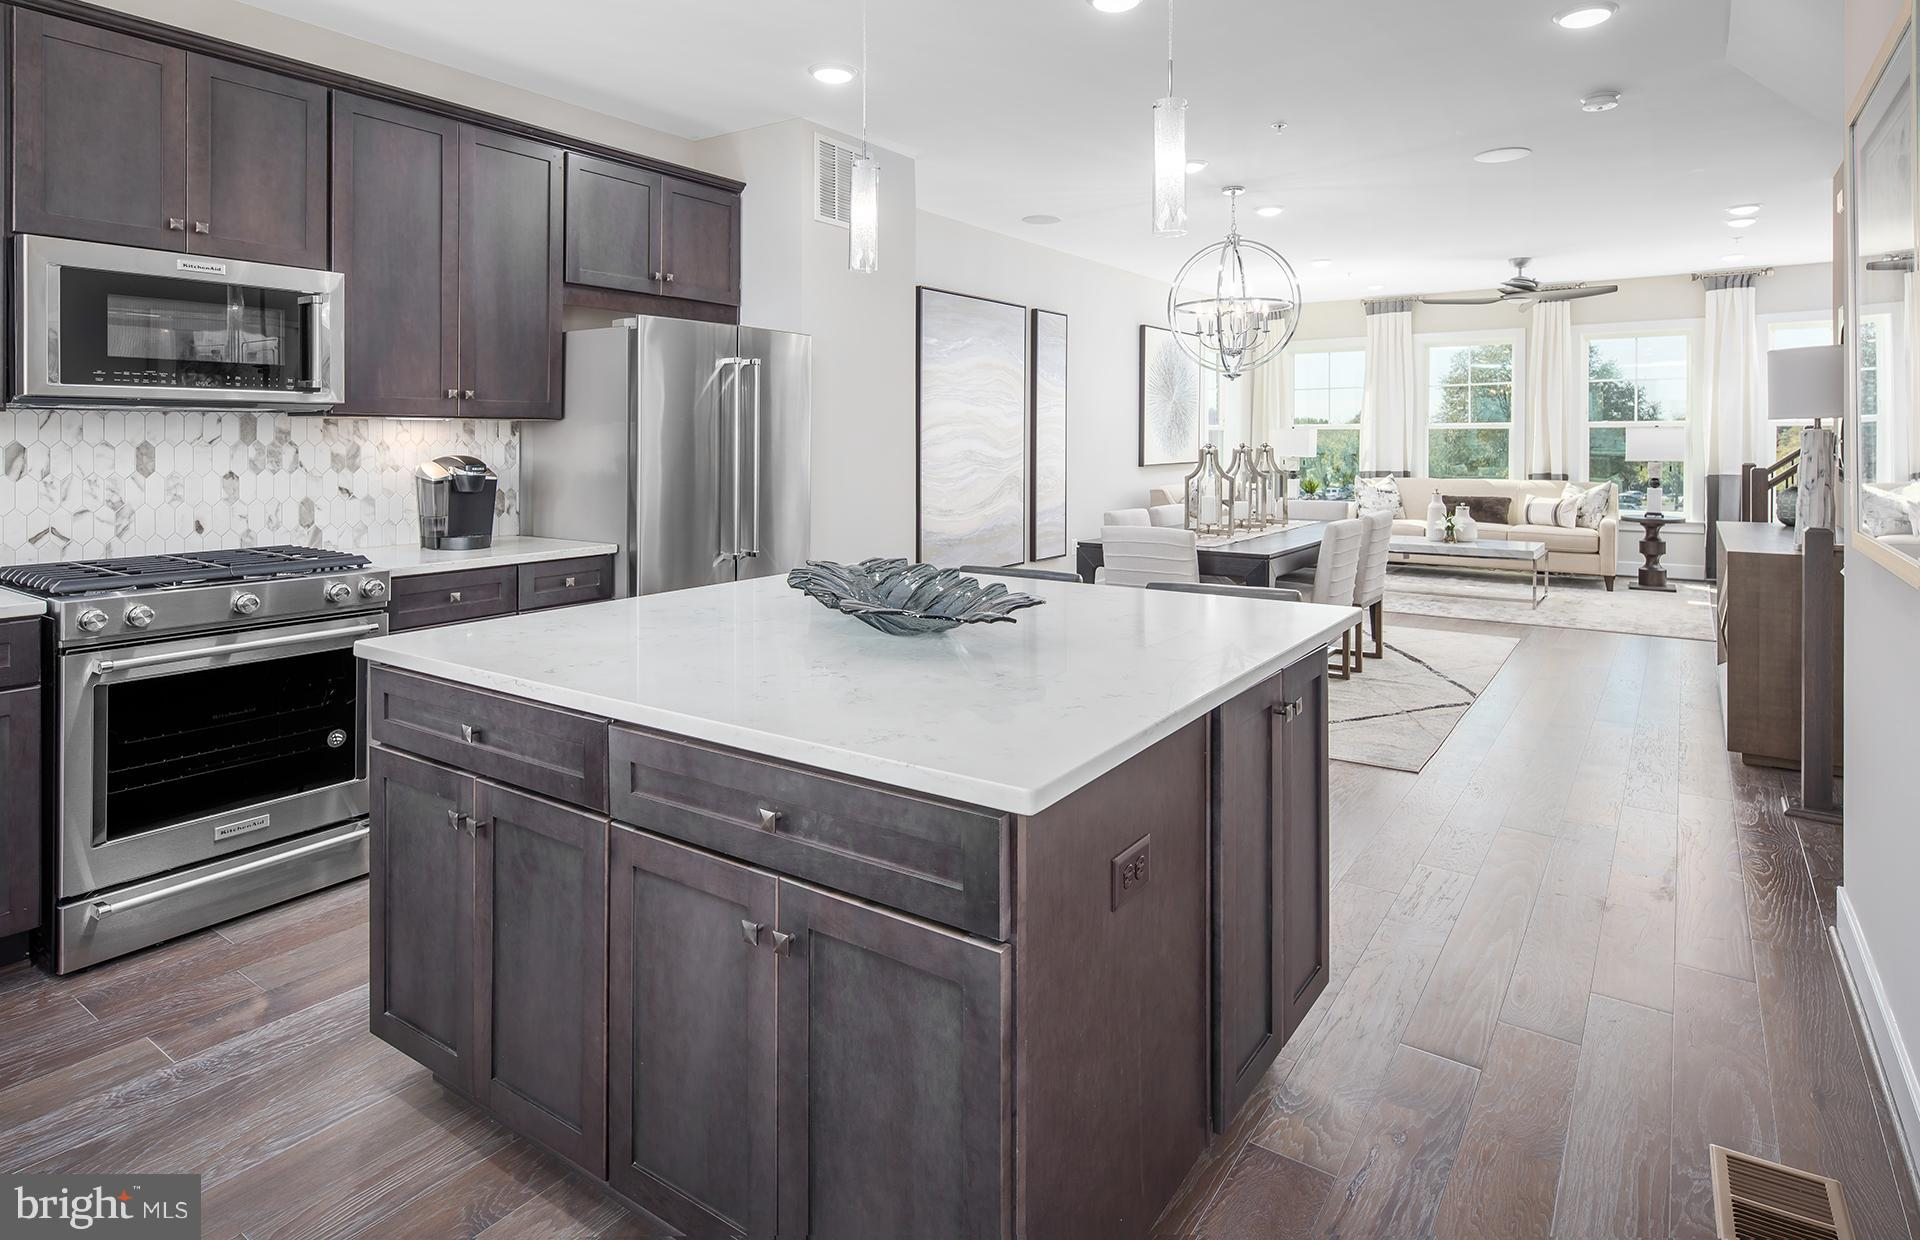 Enjoy the Frankton's spacious living area & open dining room. The large kitchen island perfect for g